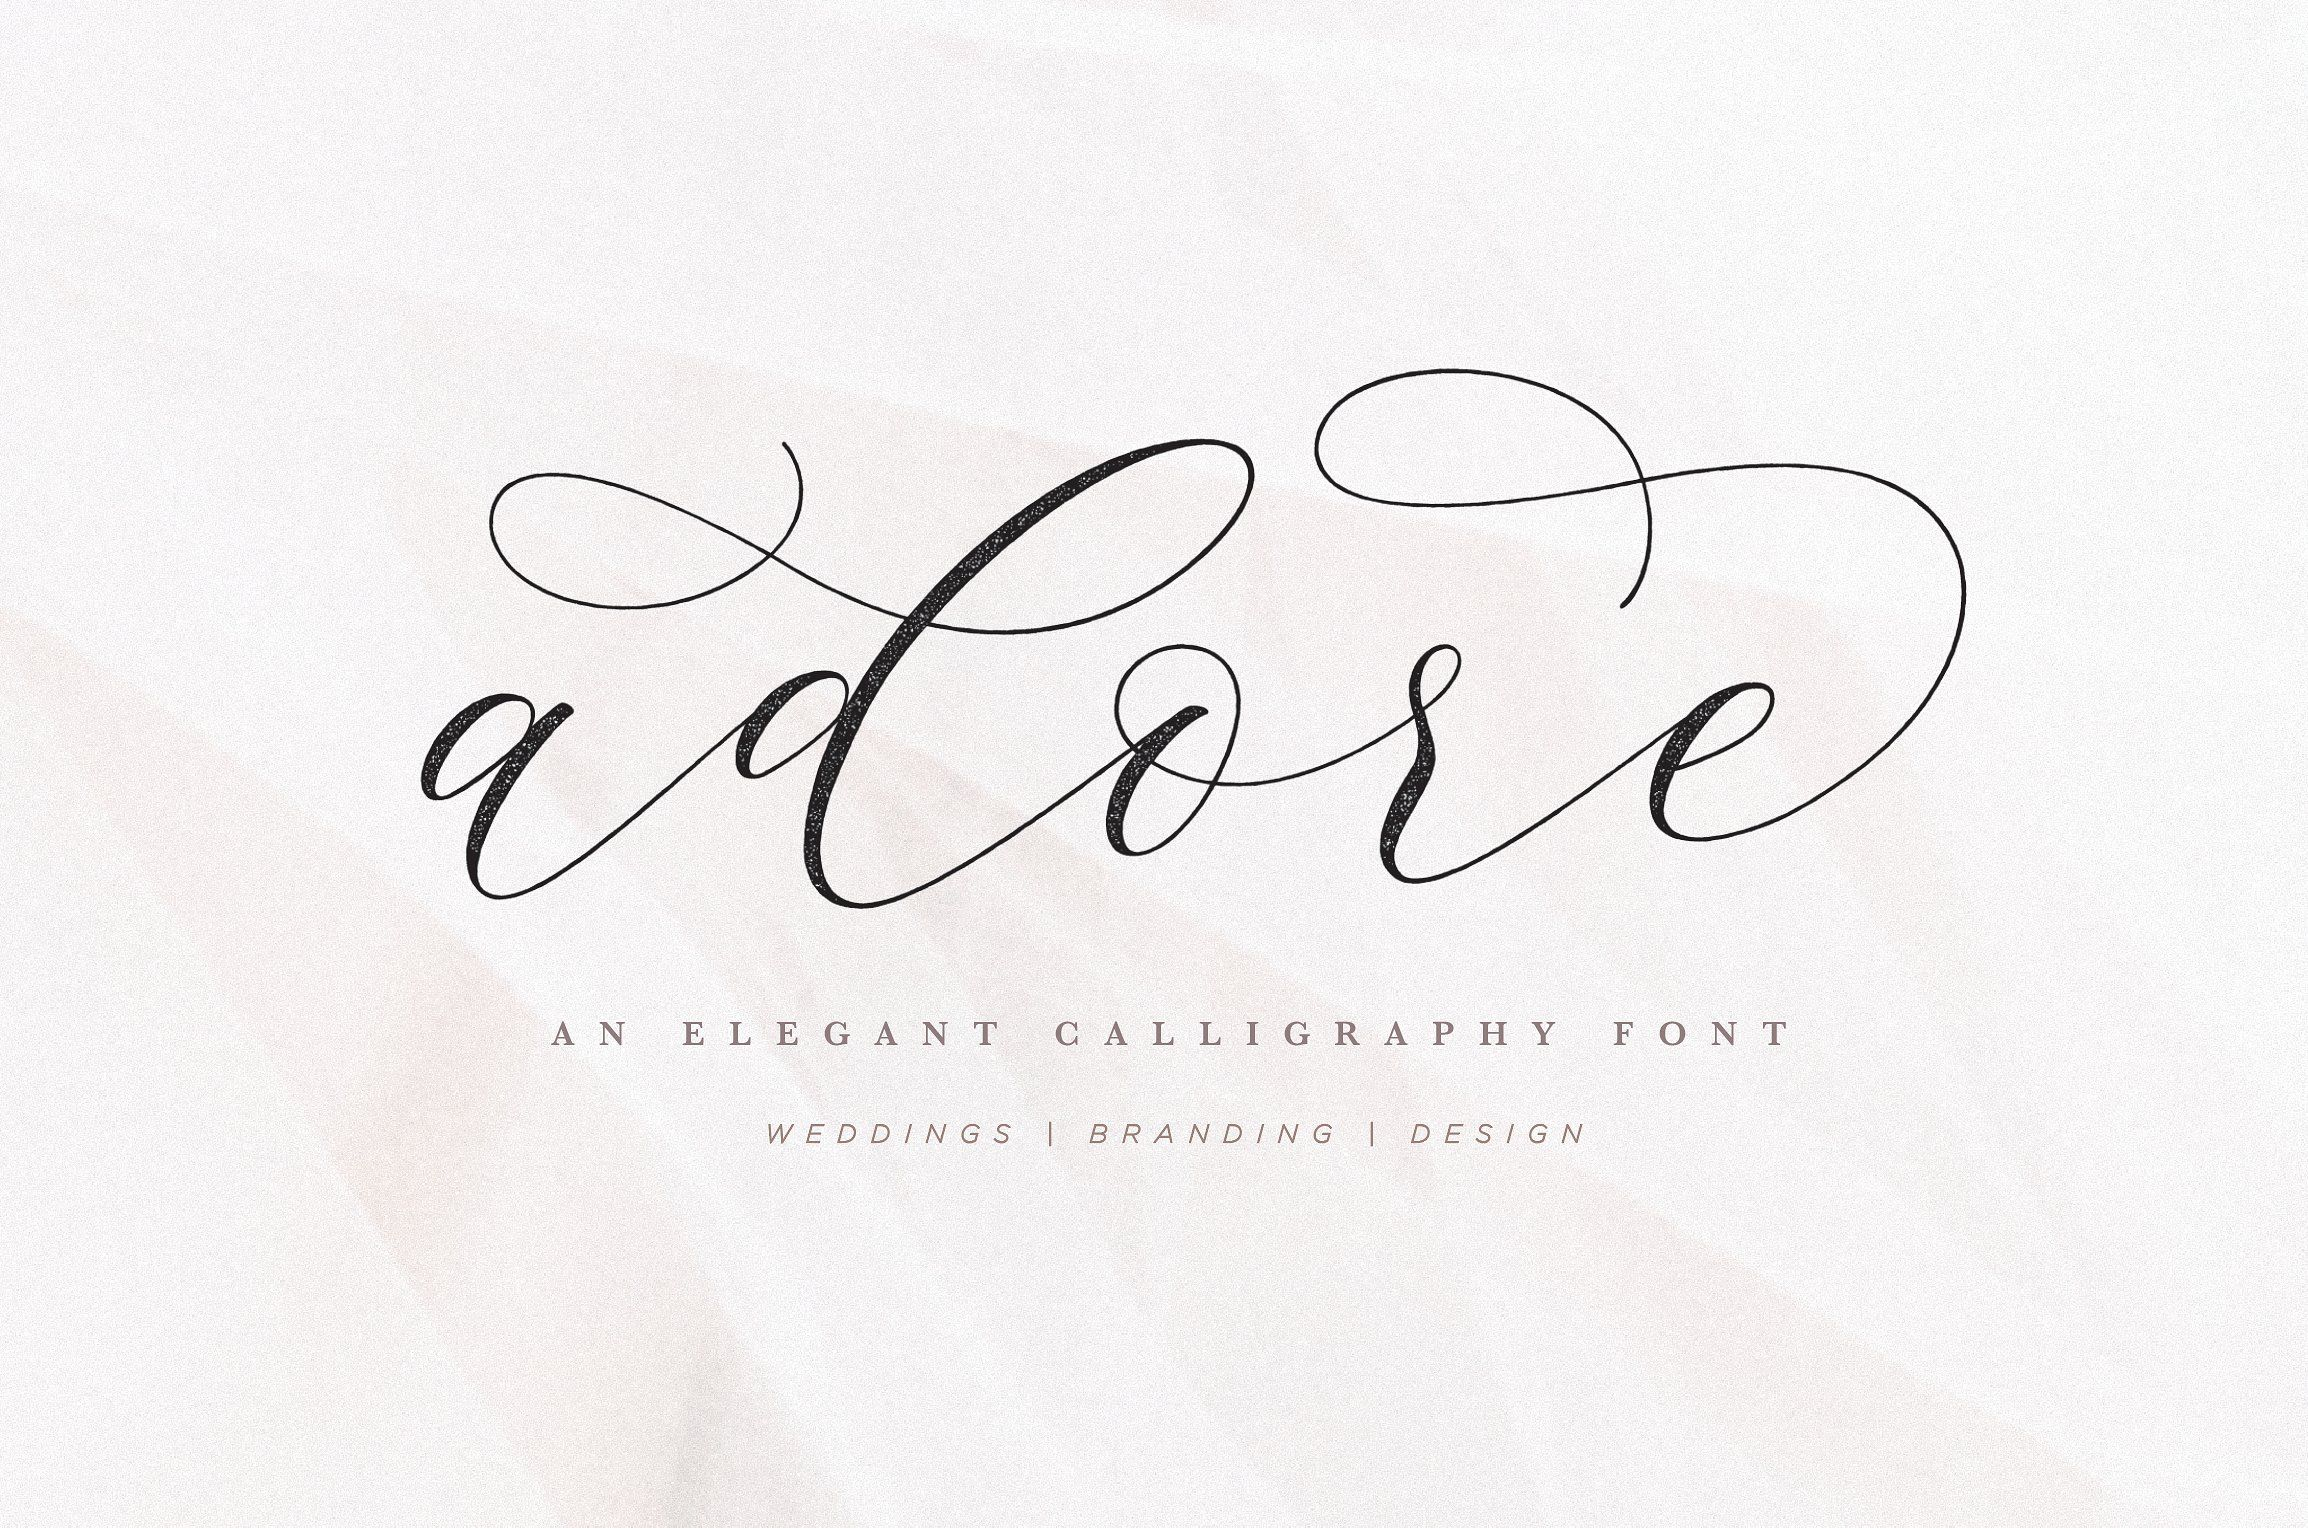 Adore Calligraphy Font - Check out my list with 10 of the BEST Script Fonts from Creative Market for branding your projects in 2019. It is never too late to add charm to your blog! Art, Fonts and Calligraphy, Typography, Handwritten Fonts, Script Fonts, Modern Fonts, Cursive Fonts, Design Fonts, Calligraphy Fonts, Simple Fonts, Elegant Fonts, Professional Fonts, Beautiful Fonts